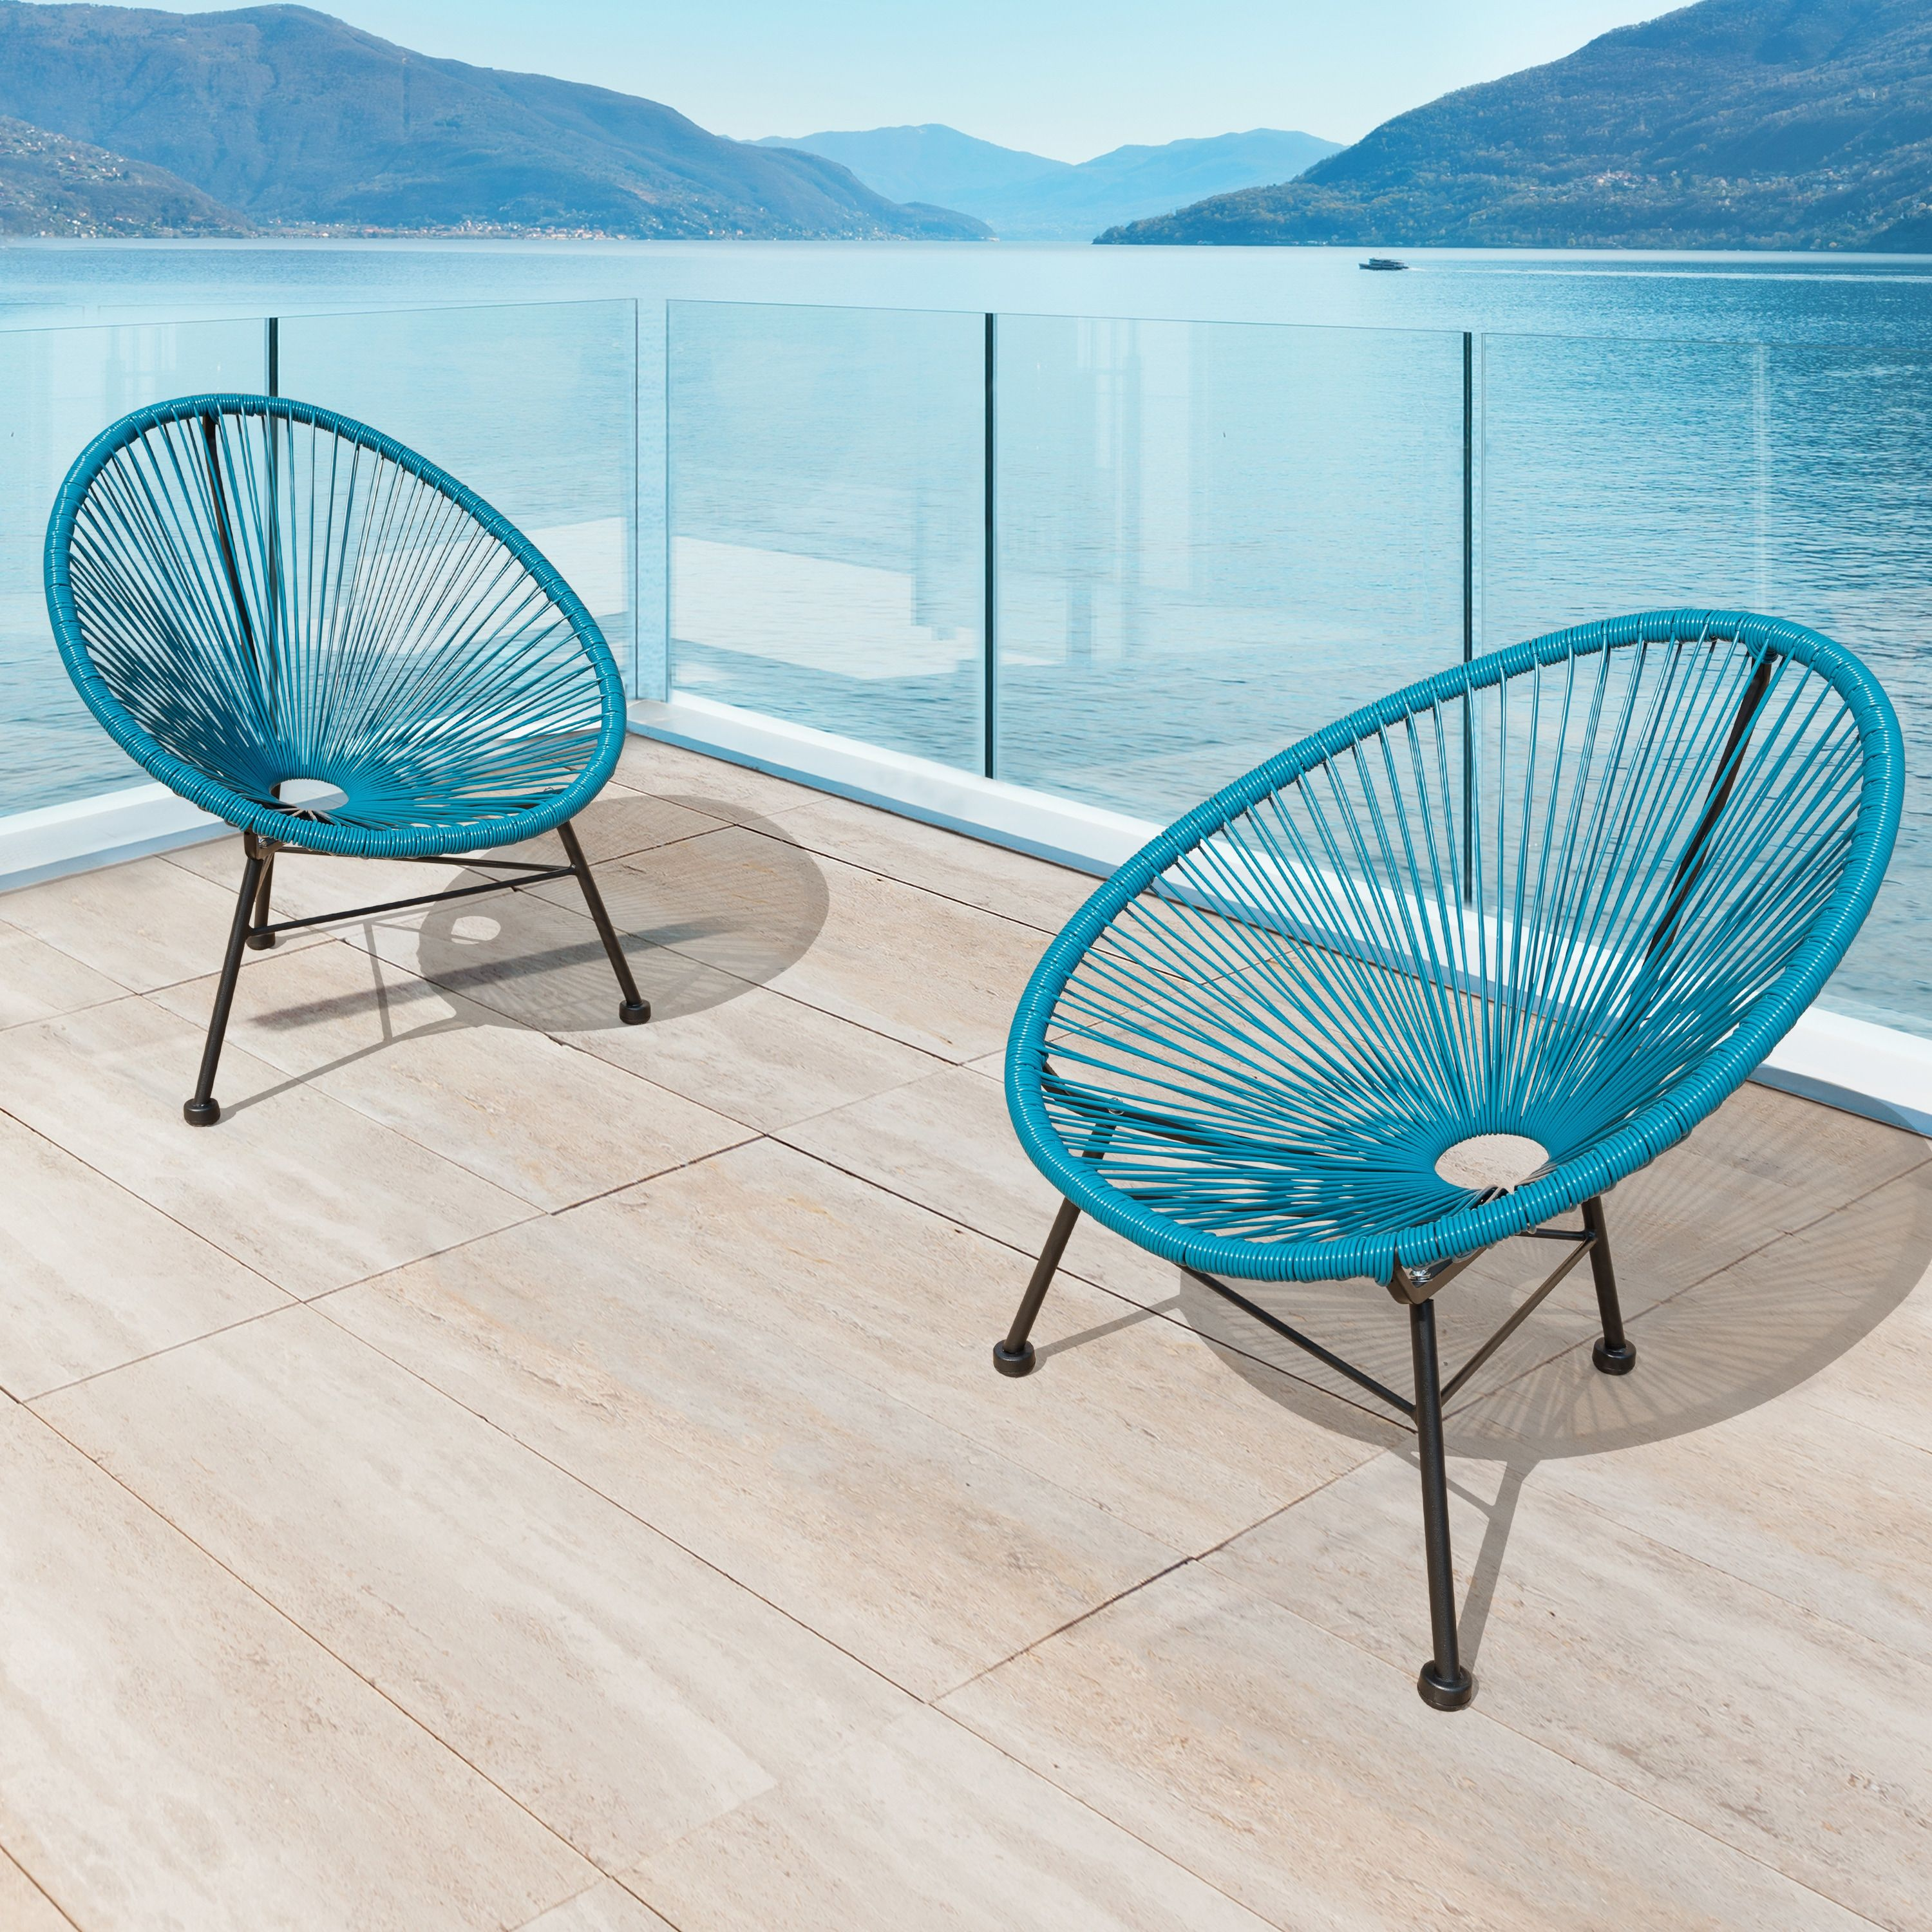 Remarkable Sarcelles Modern Wicker Patio Chairs For Kids By Corvus Set Gmtry Best Dining Table And Chair Ideas Images Gmtryco